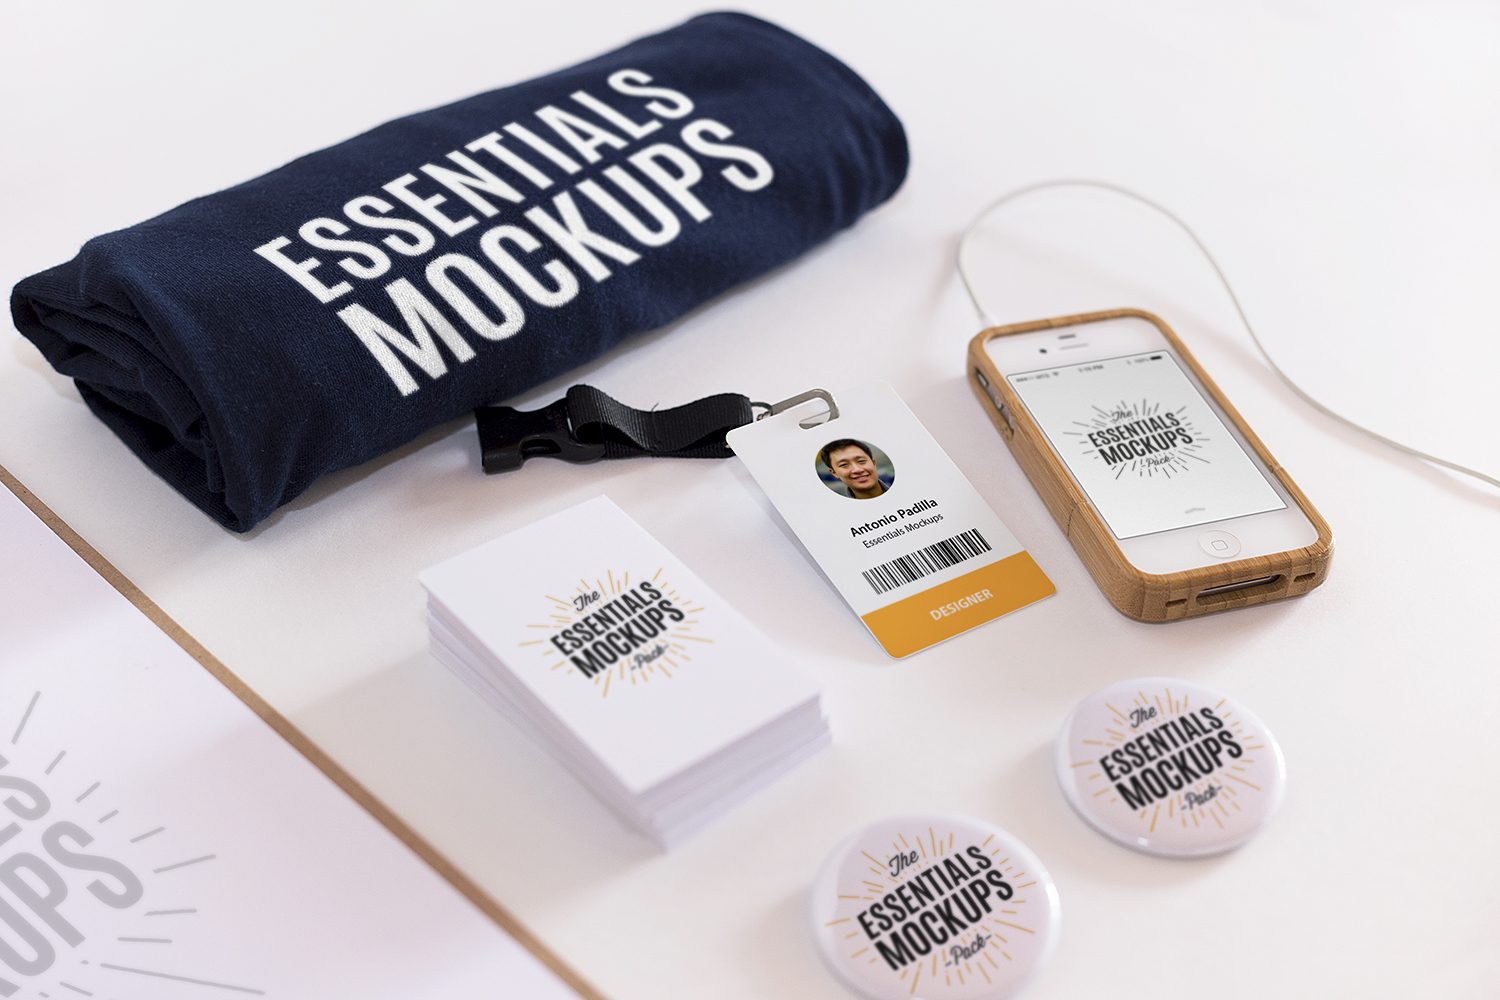 Scene Creator Mockup with a Business Card